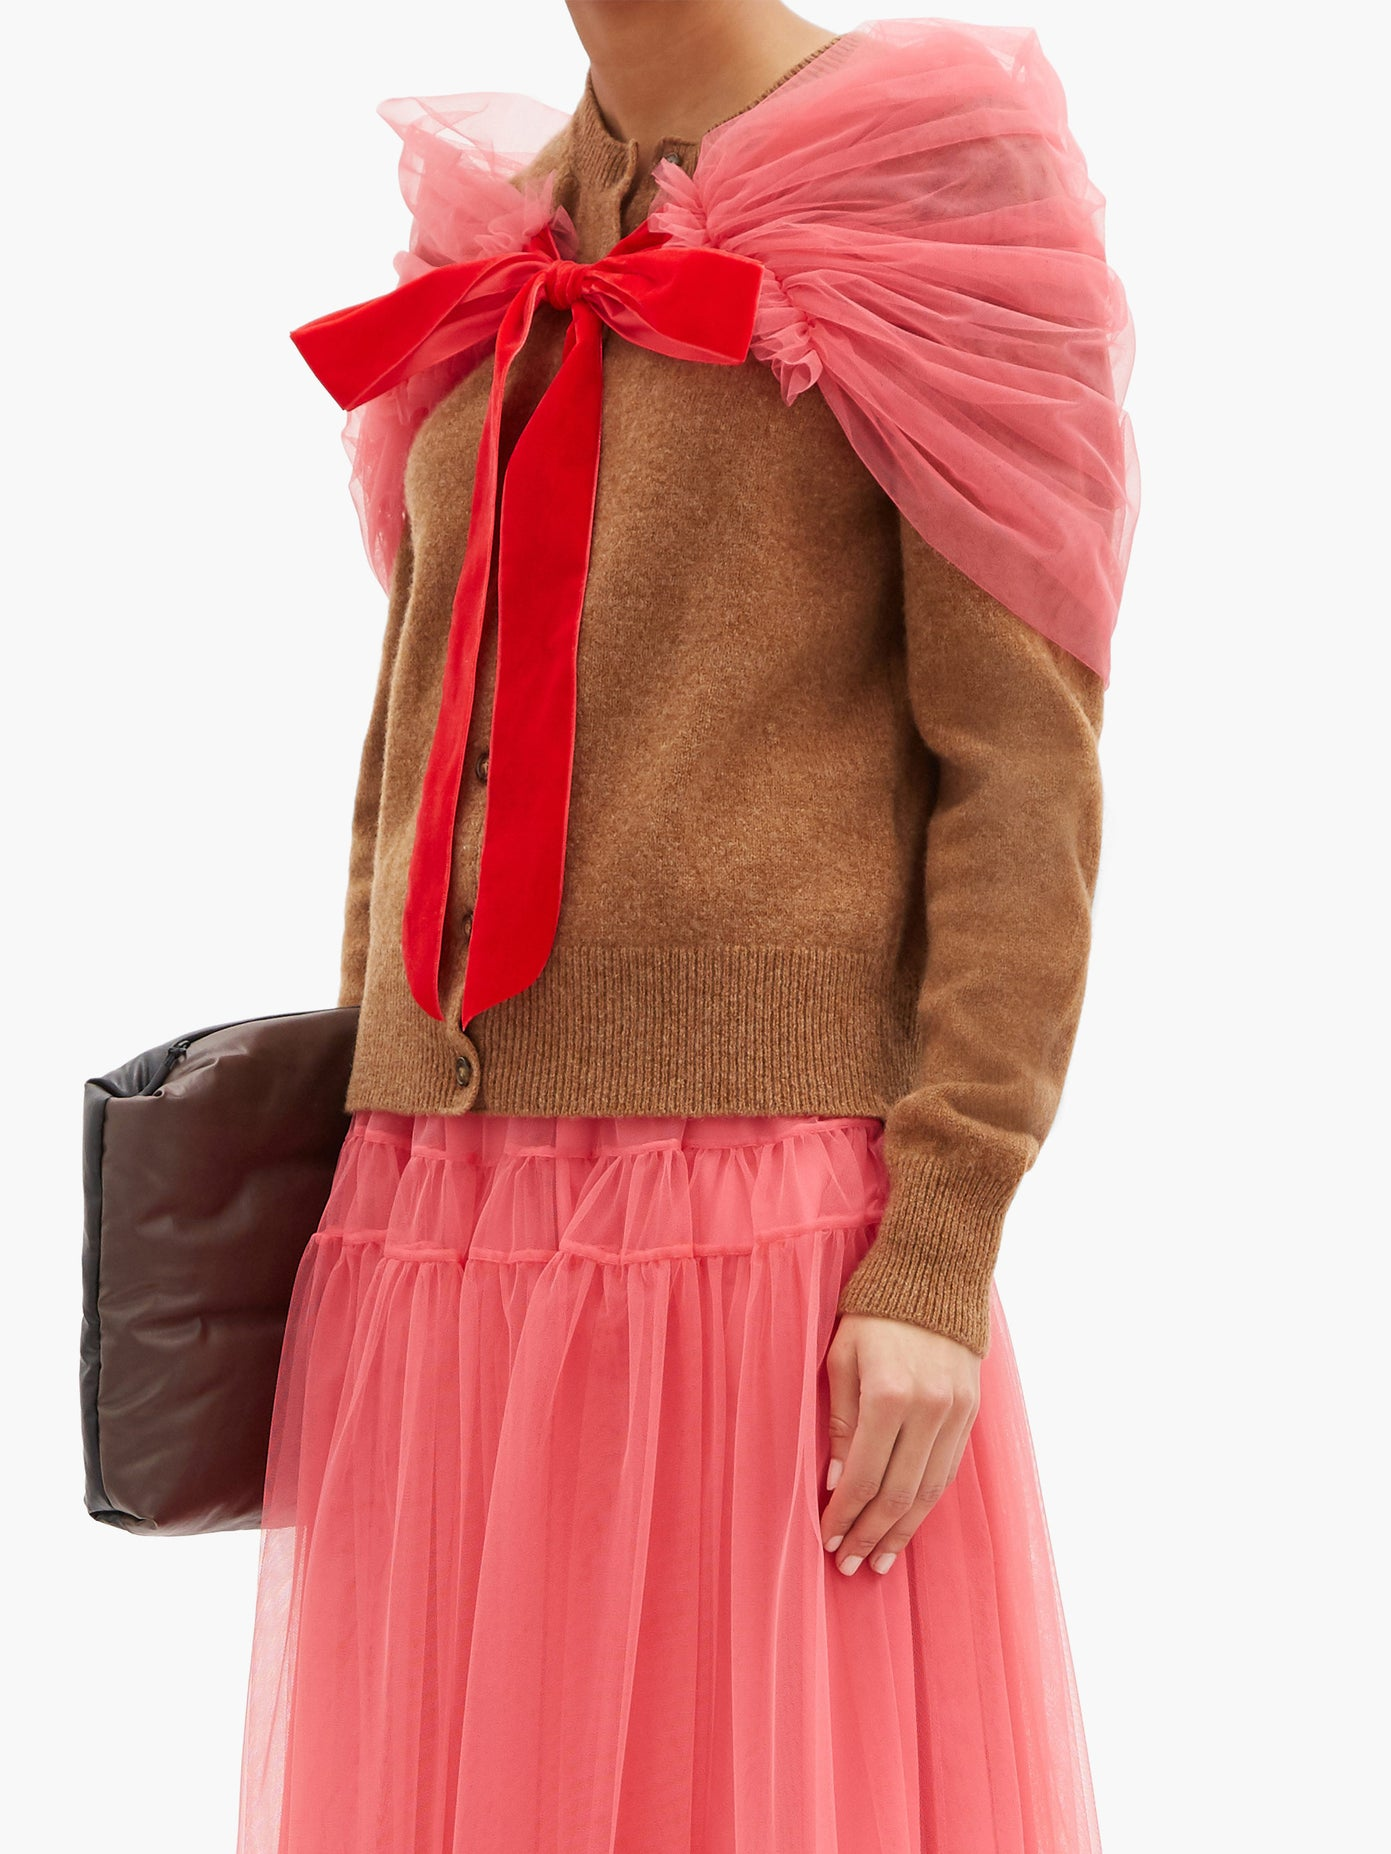 Molly Goddard at Matches Joelle tulle-shawl wool cardigan £680